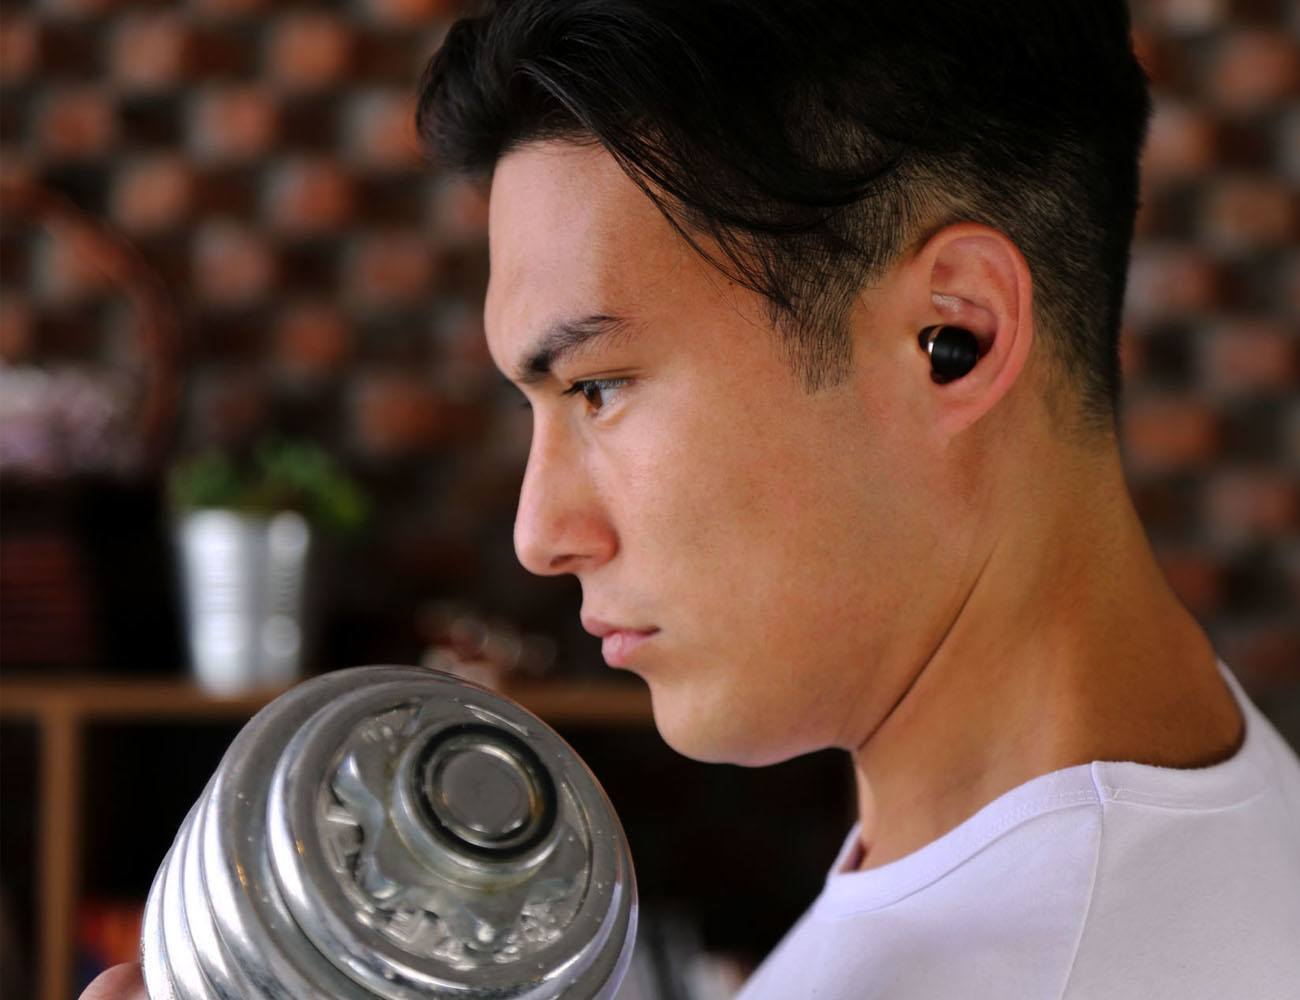 a9cb8f13285 Air Twins True-Wireless Stereo Earbuds » Gadget Flow